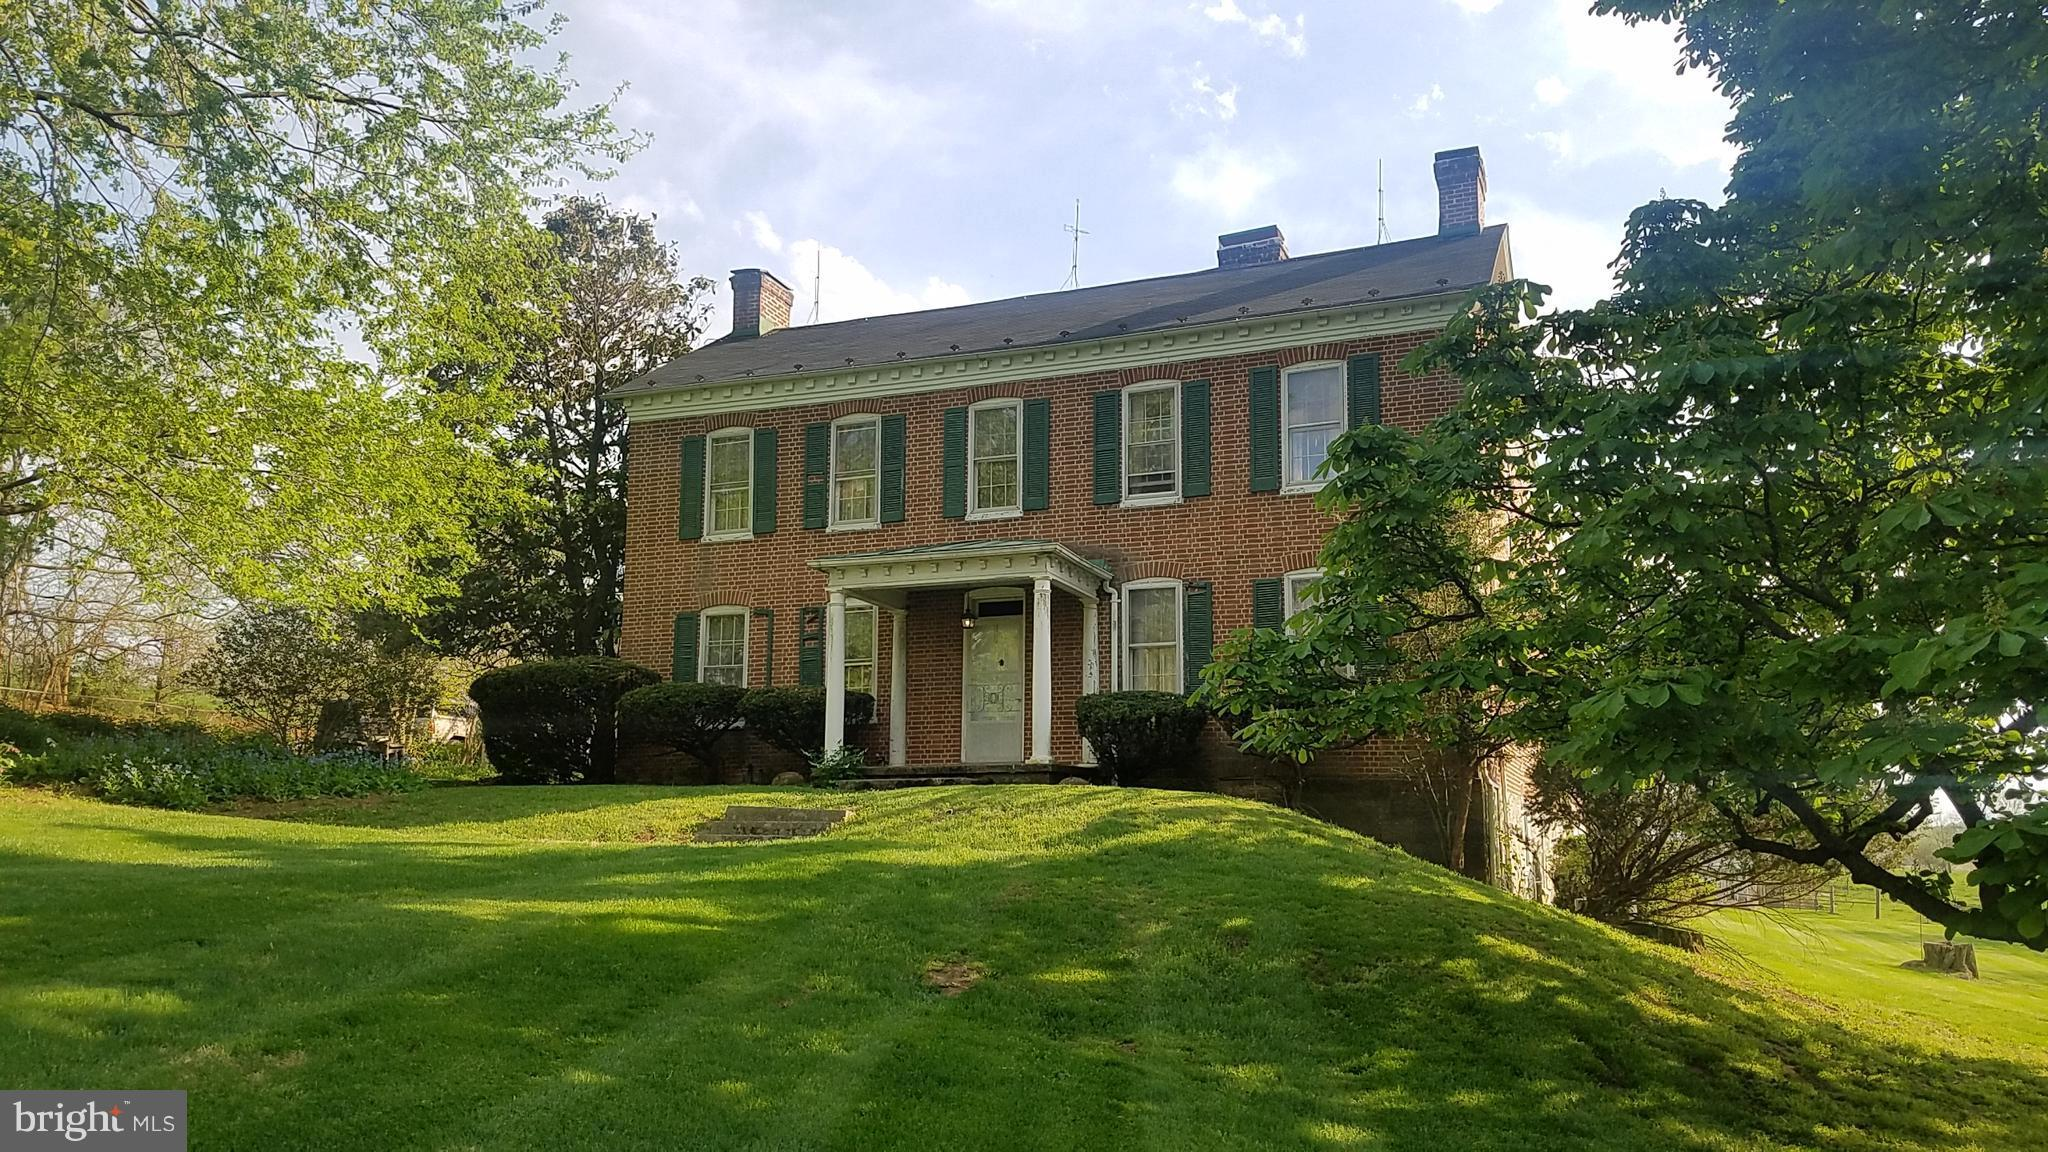 """""""Boyd Brooke"""", built in 1869, 15+ acres with way too many amenities to list entirely, sits minutes from the city, but seems miles away.  Park-like lawn with historic, stone spring house, meandering creek, bank barn, run-in sheds, corn crib, dog kennels, huge indoor pool, 5 bedrooms, main level master bedroom. Majestic home has many updates, ready for your ideas.  Rare opportunity for land,water!"""